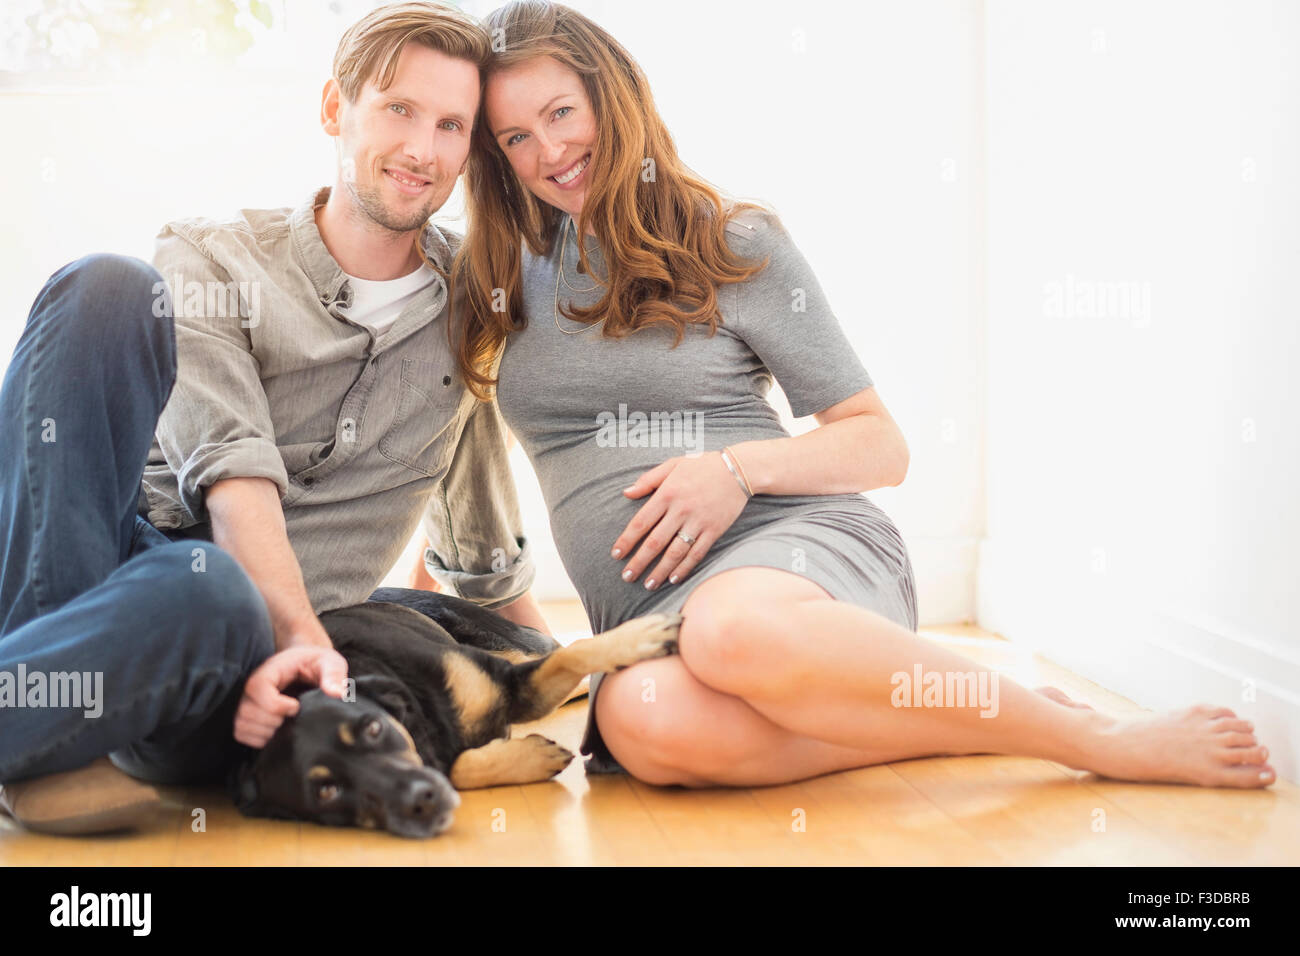 Portrait of mid-adult couple with dog indoors Stock Photo